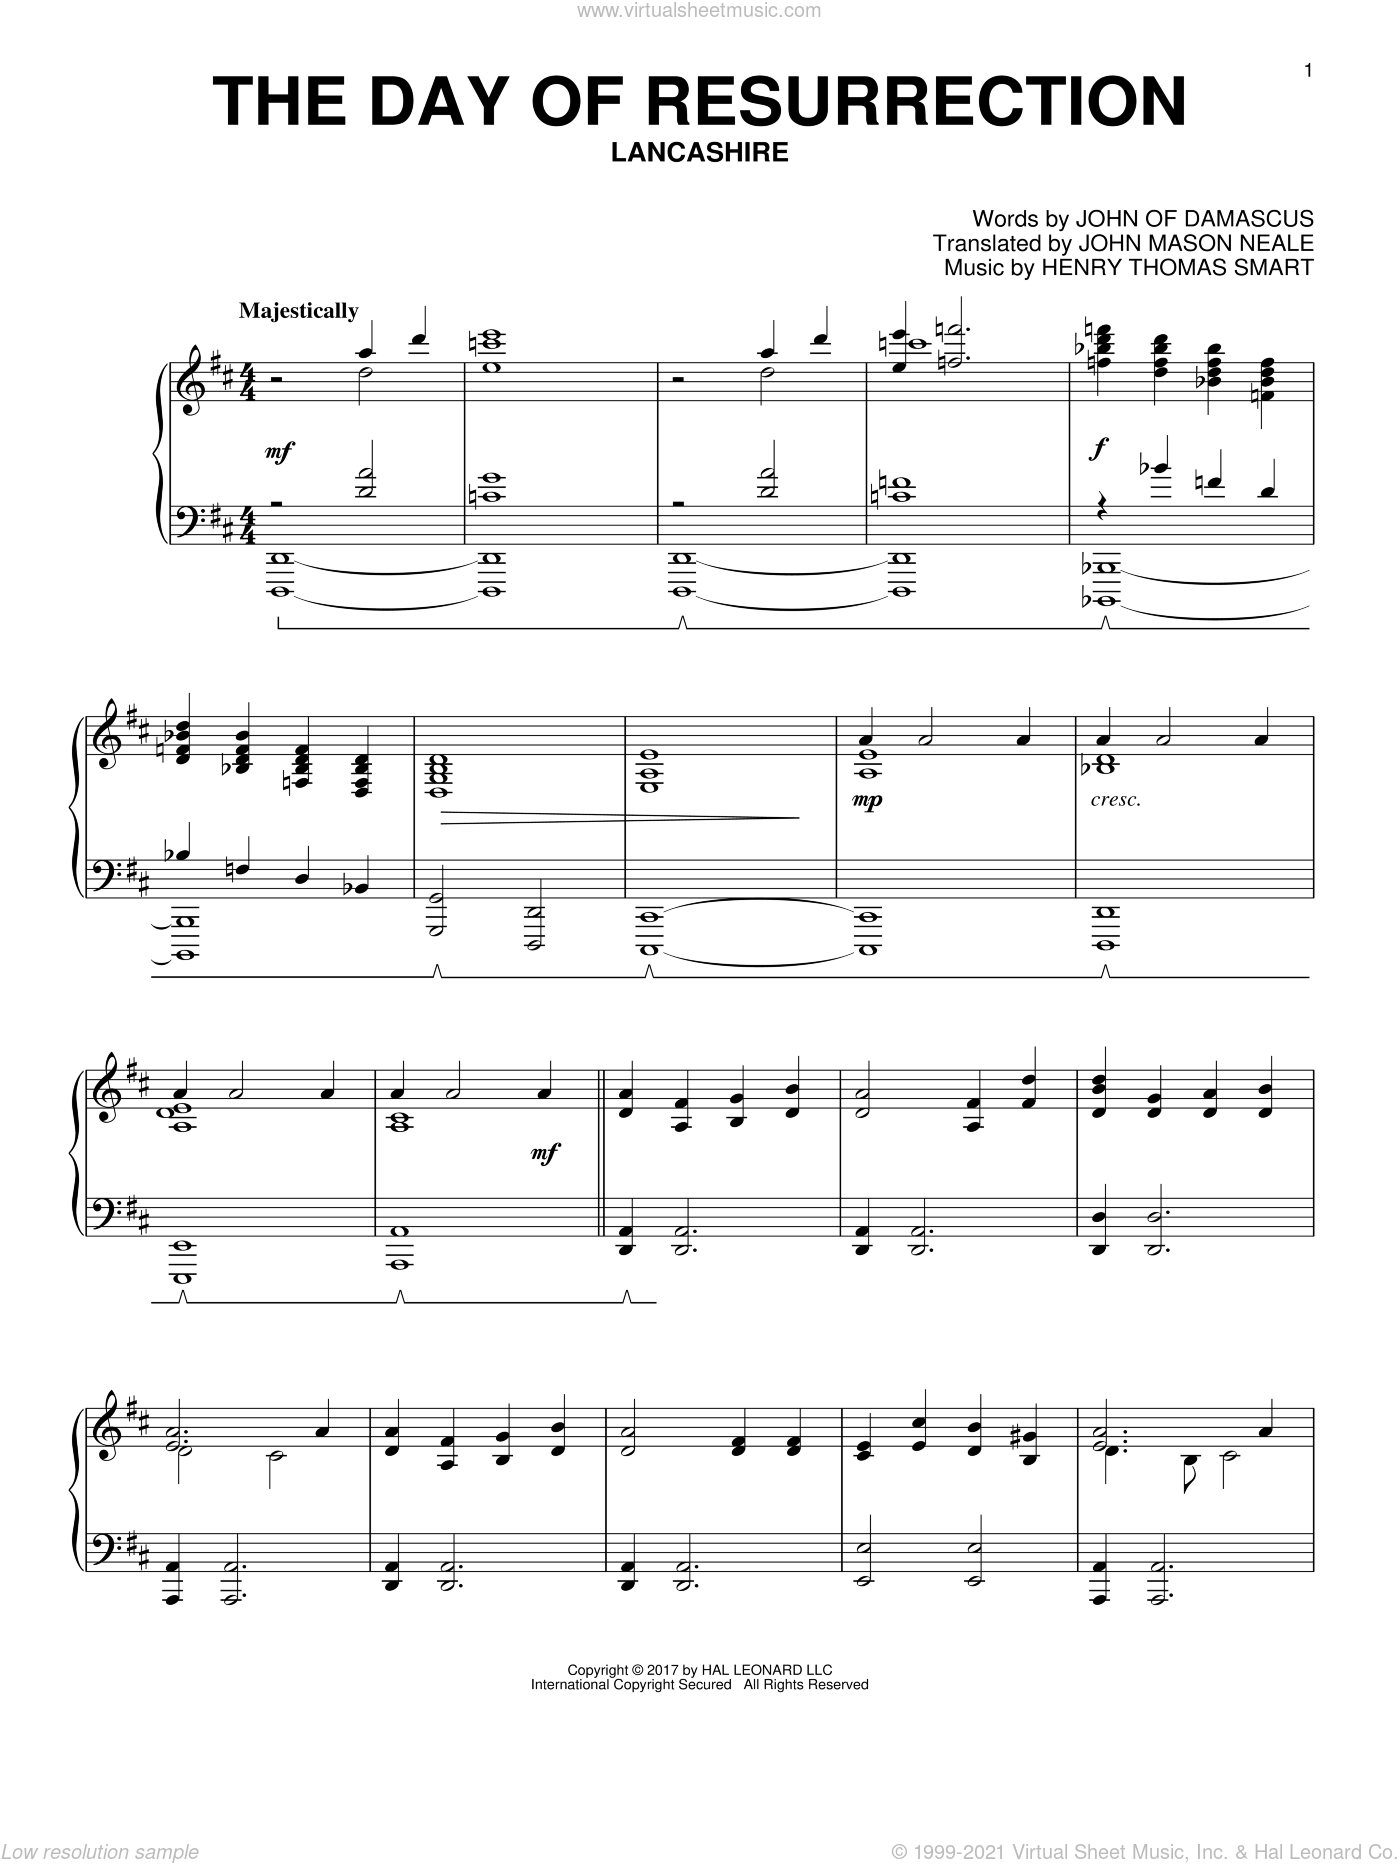 The Day Of Resurrection sheet music for piano solo by John Mason Neale, Henry Thomas Smart and John of Damascus, intermediate. Score Image Preview.